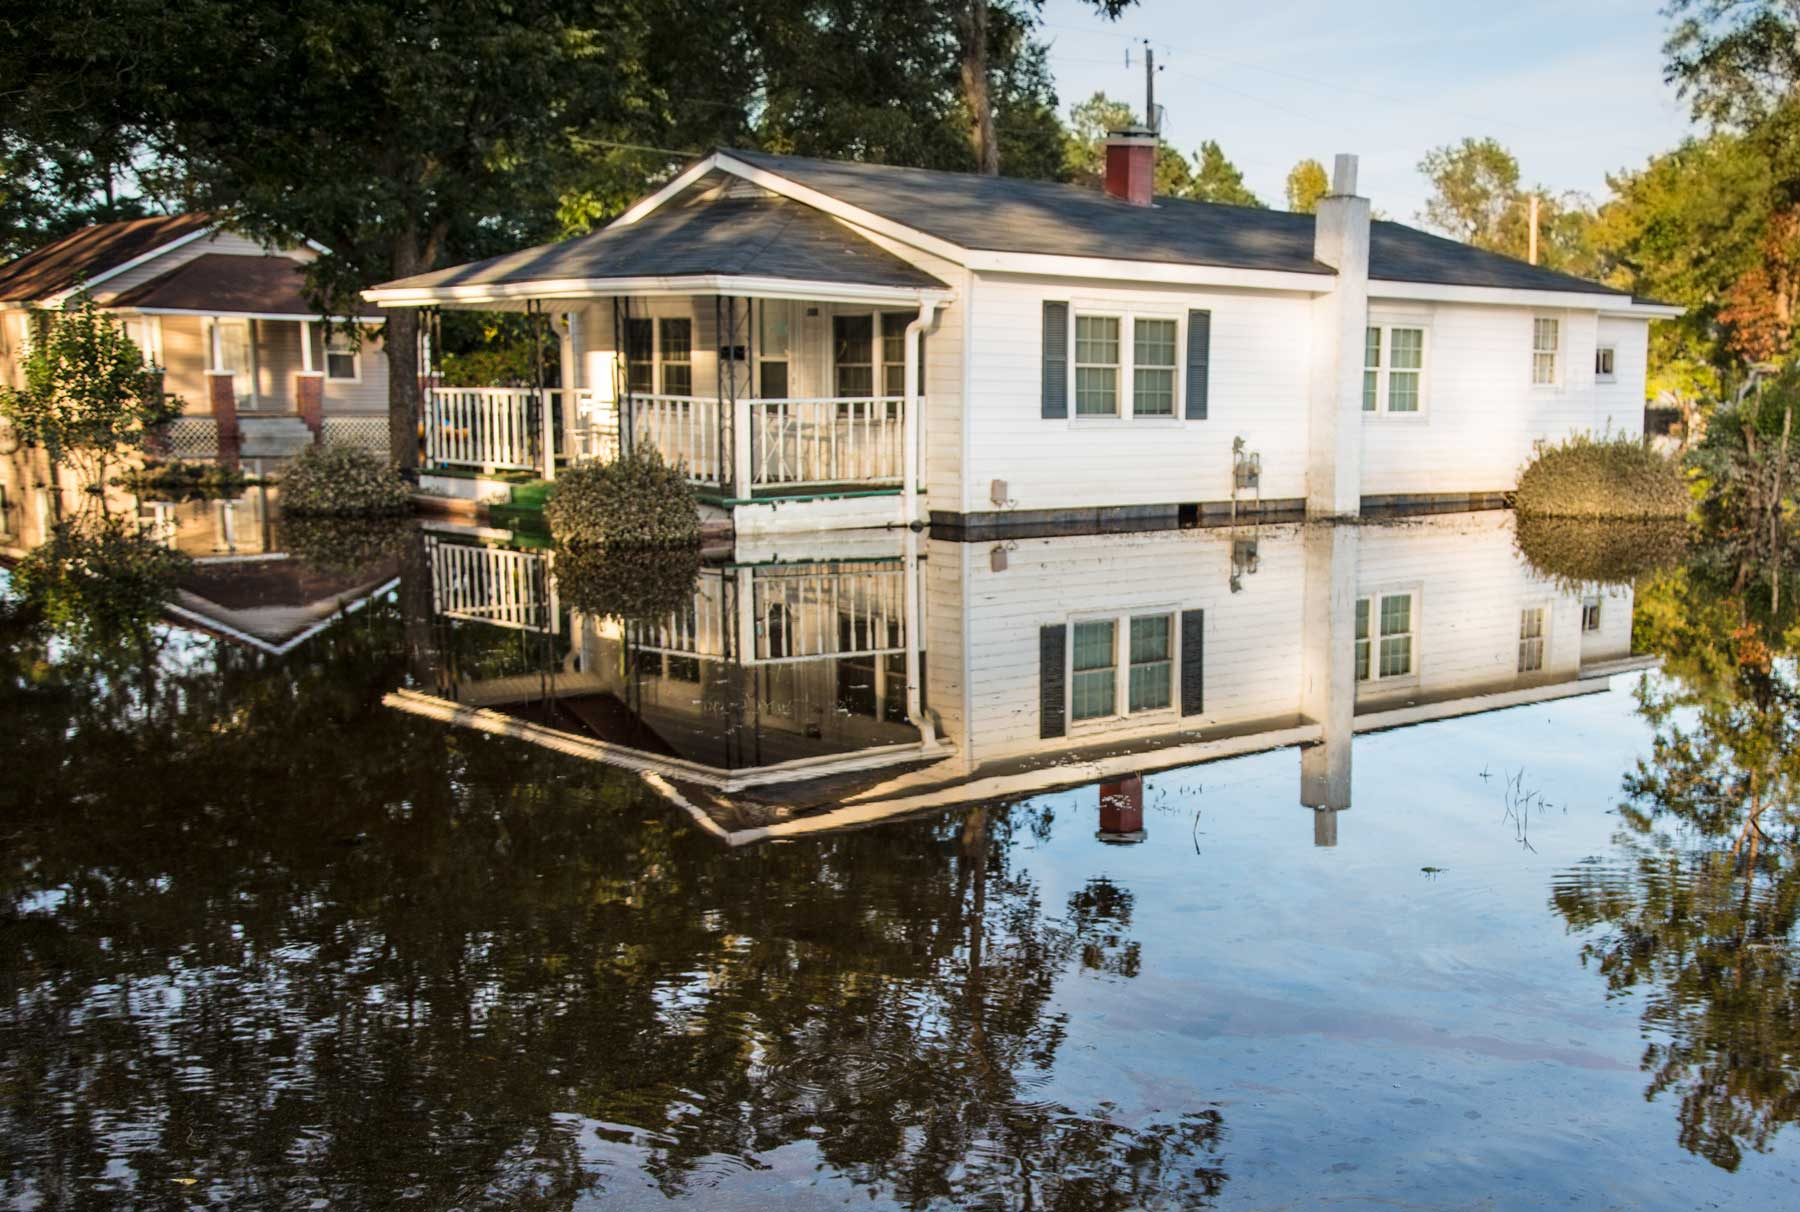 A home's property is completely inundated under floodwater. (Julie Dermansky)